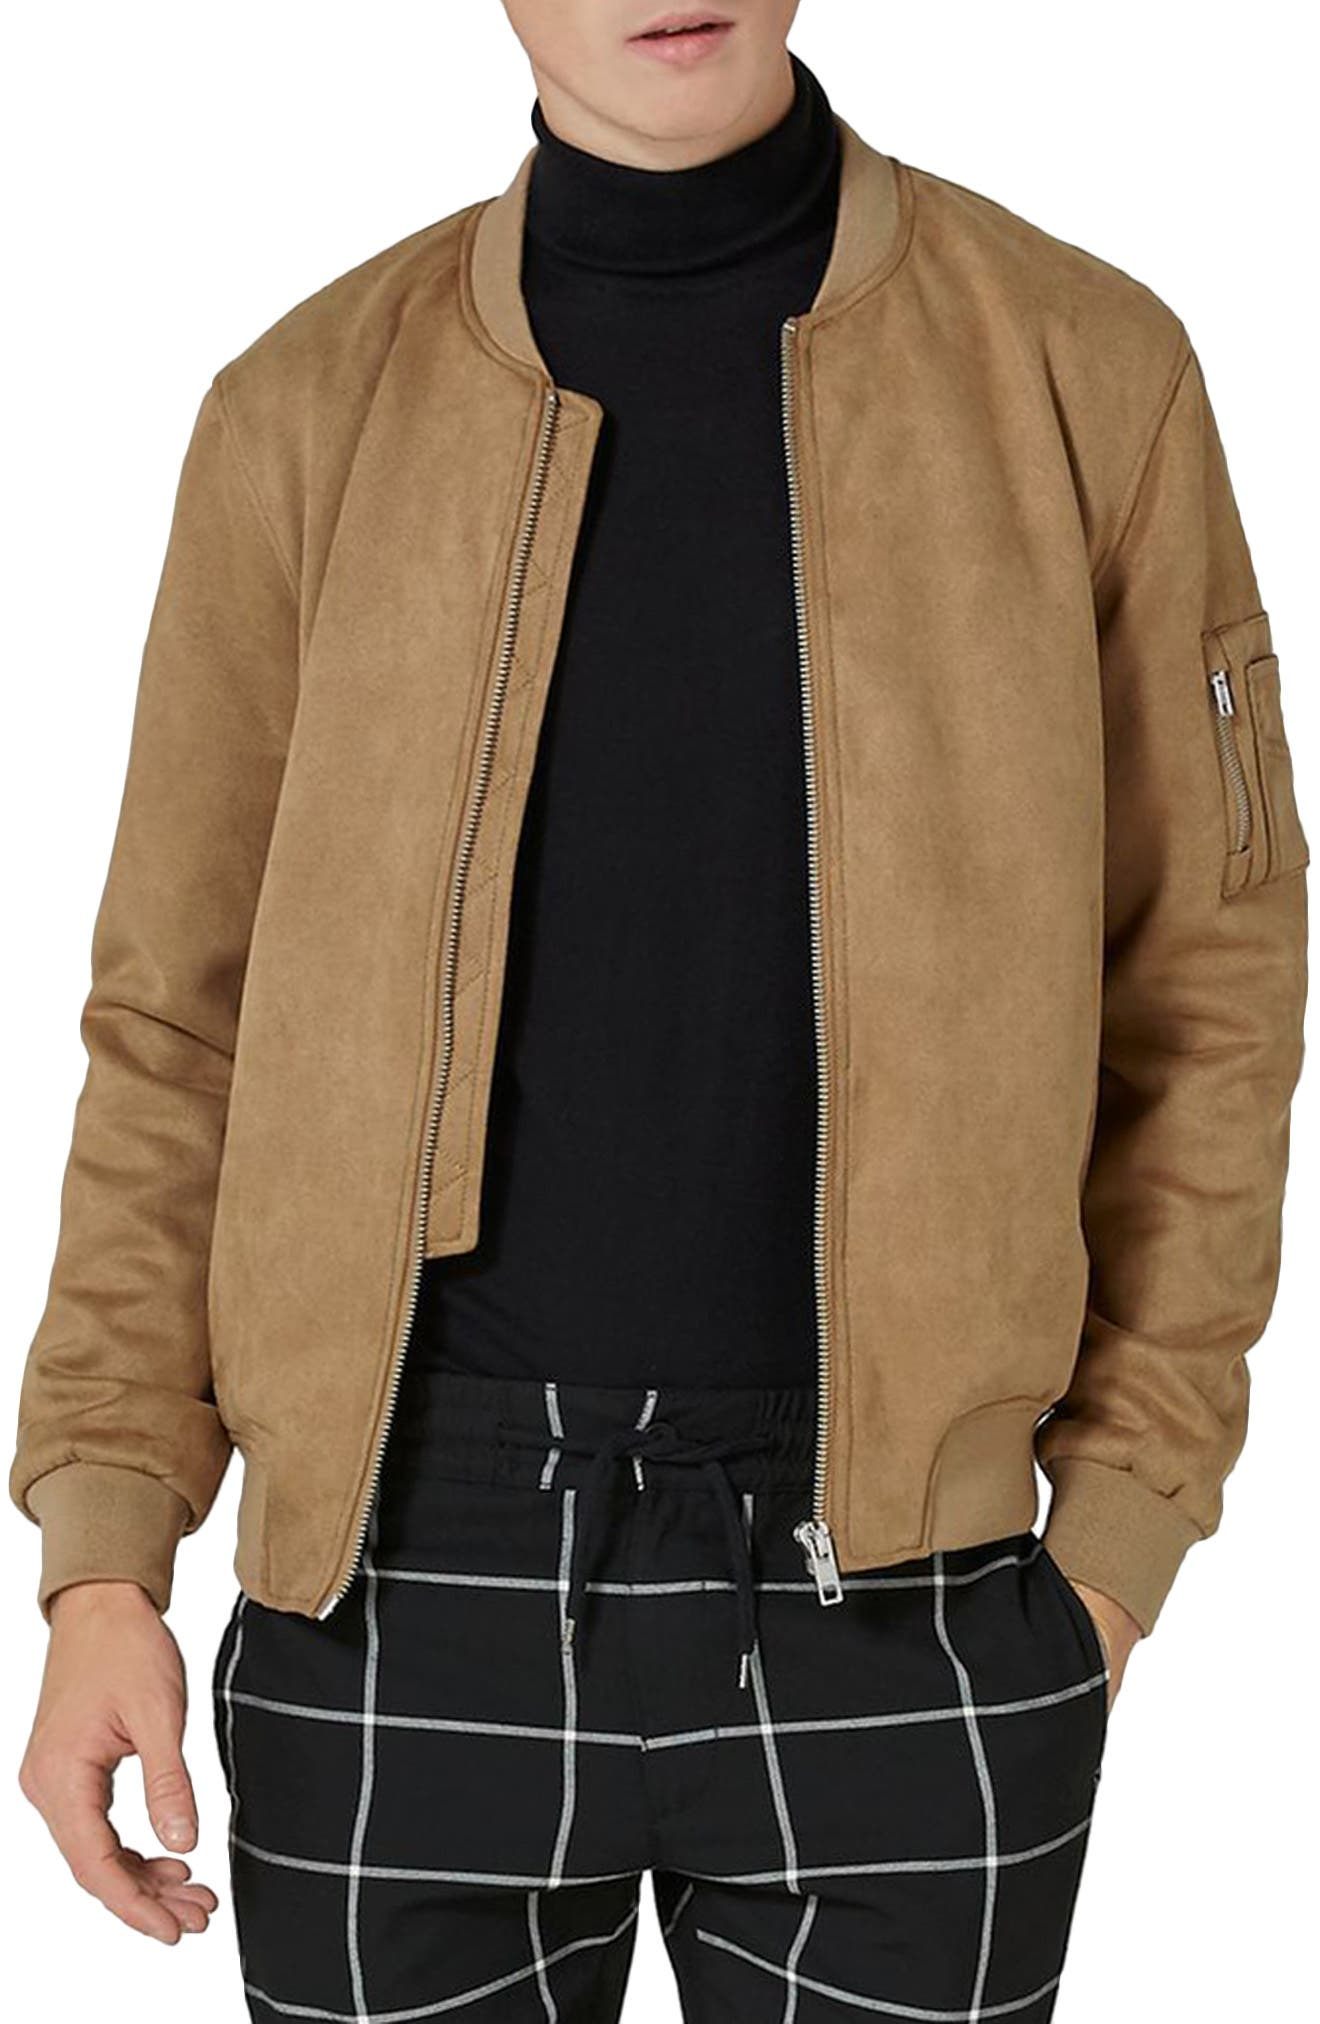 Faux Suede Bomber Jacket,                             Main thumbnail 1, color,                             Brown